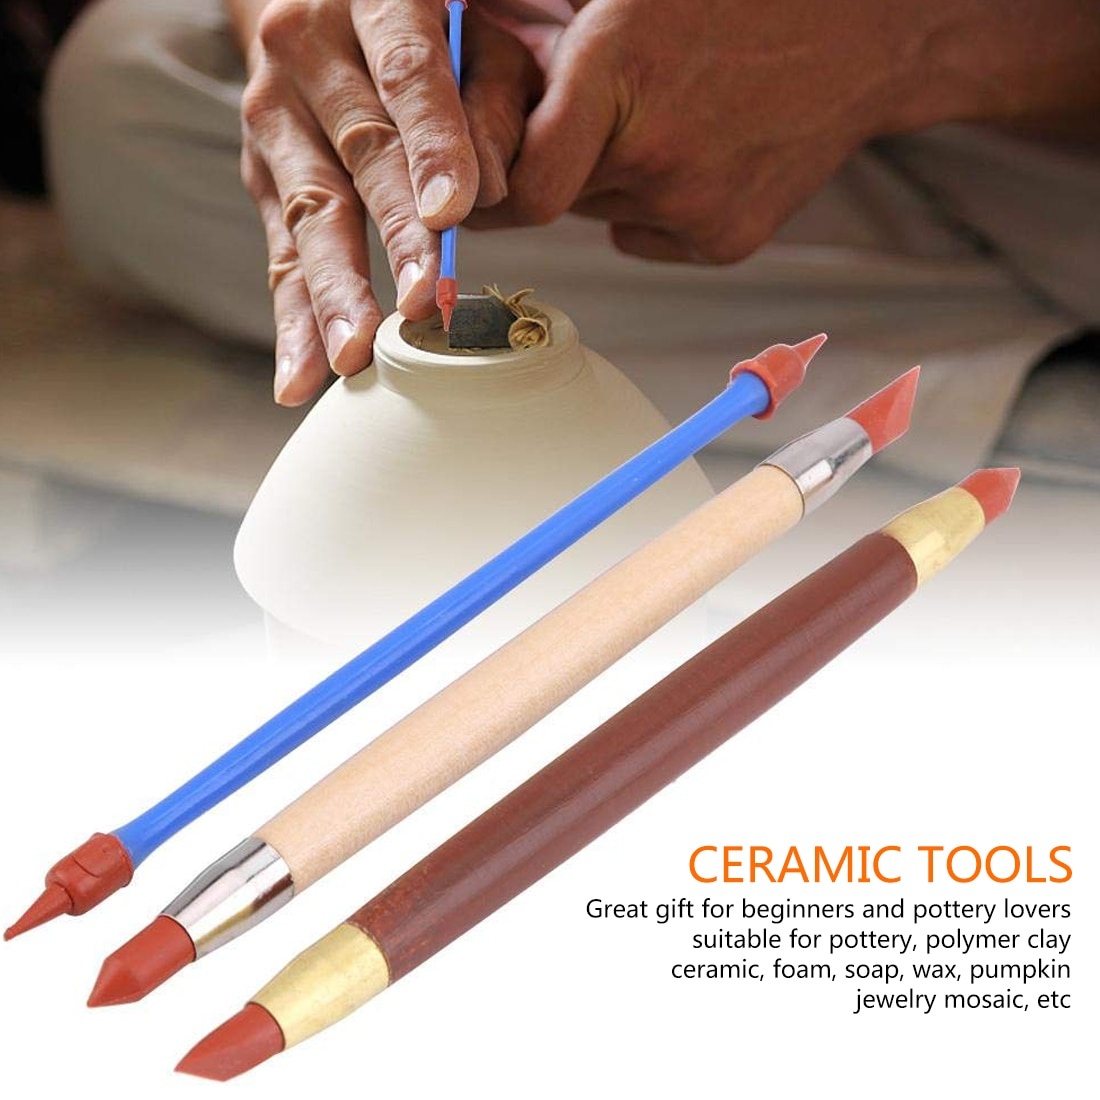 30pcs Clay Sculpting Kit Sculpt Smoothing Wax Carving Pottery Ceramic Tools Polymer Shapers Perfect Modeling Carved Tool